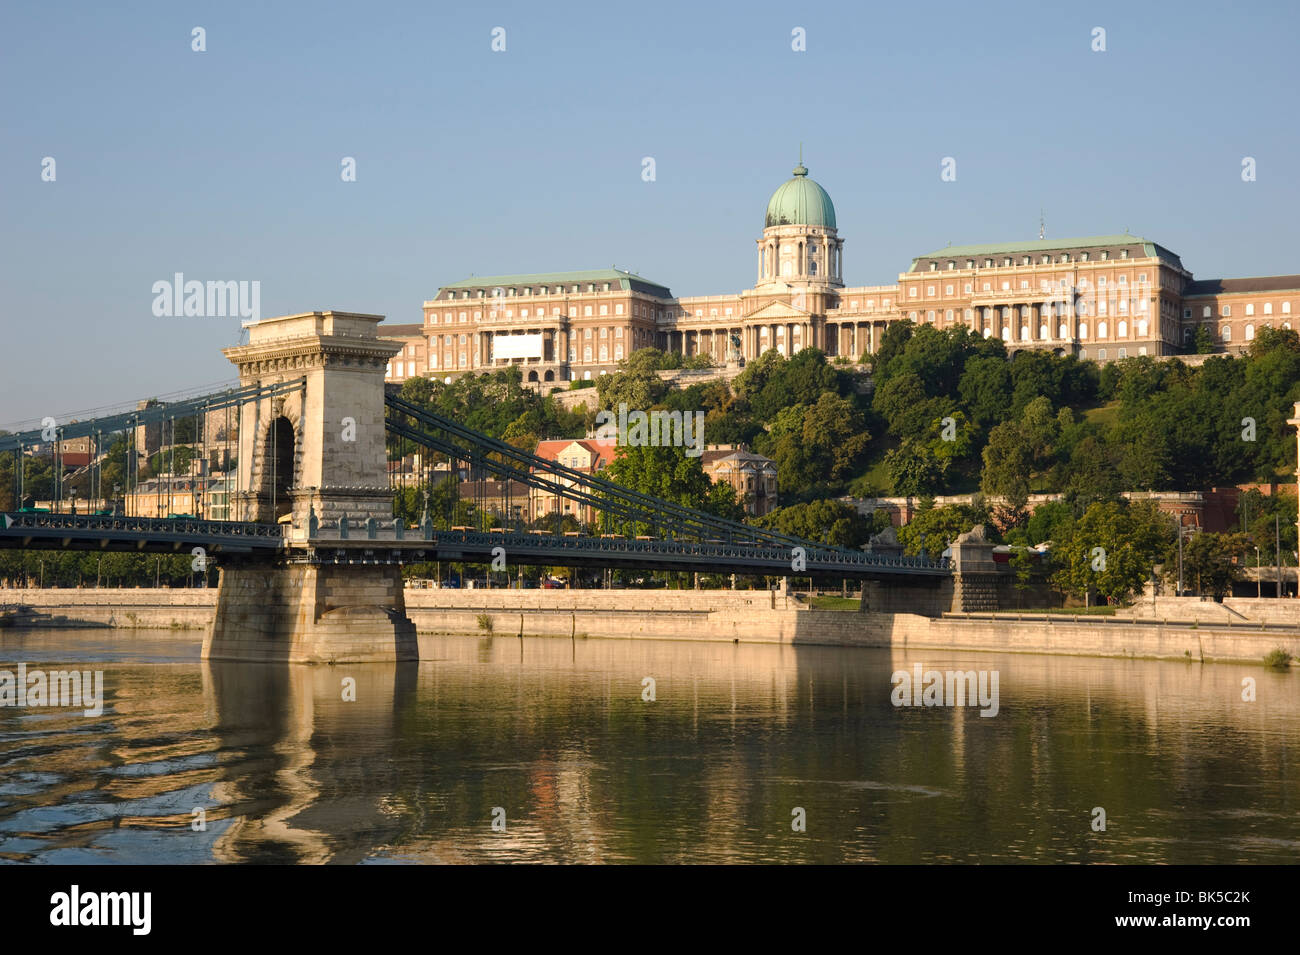 The Chain Bridge over the Danube River and Castle Hill seen from a boat, Budapest, Hungary, Europe - Stock Image